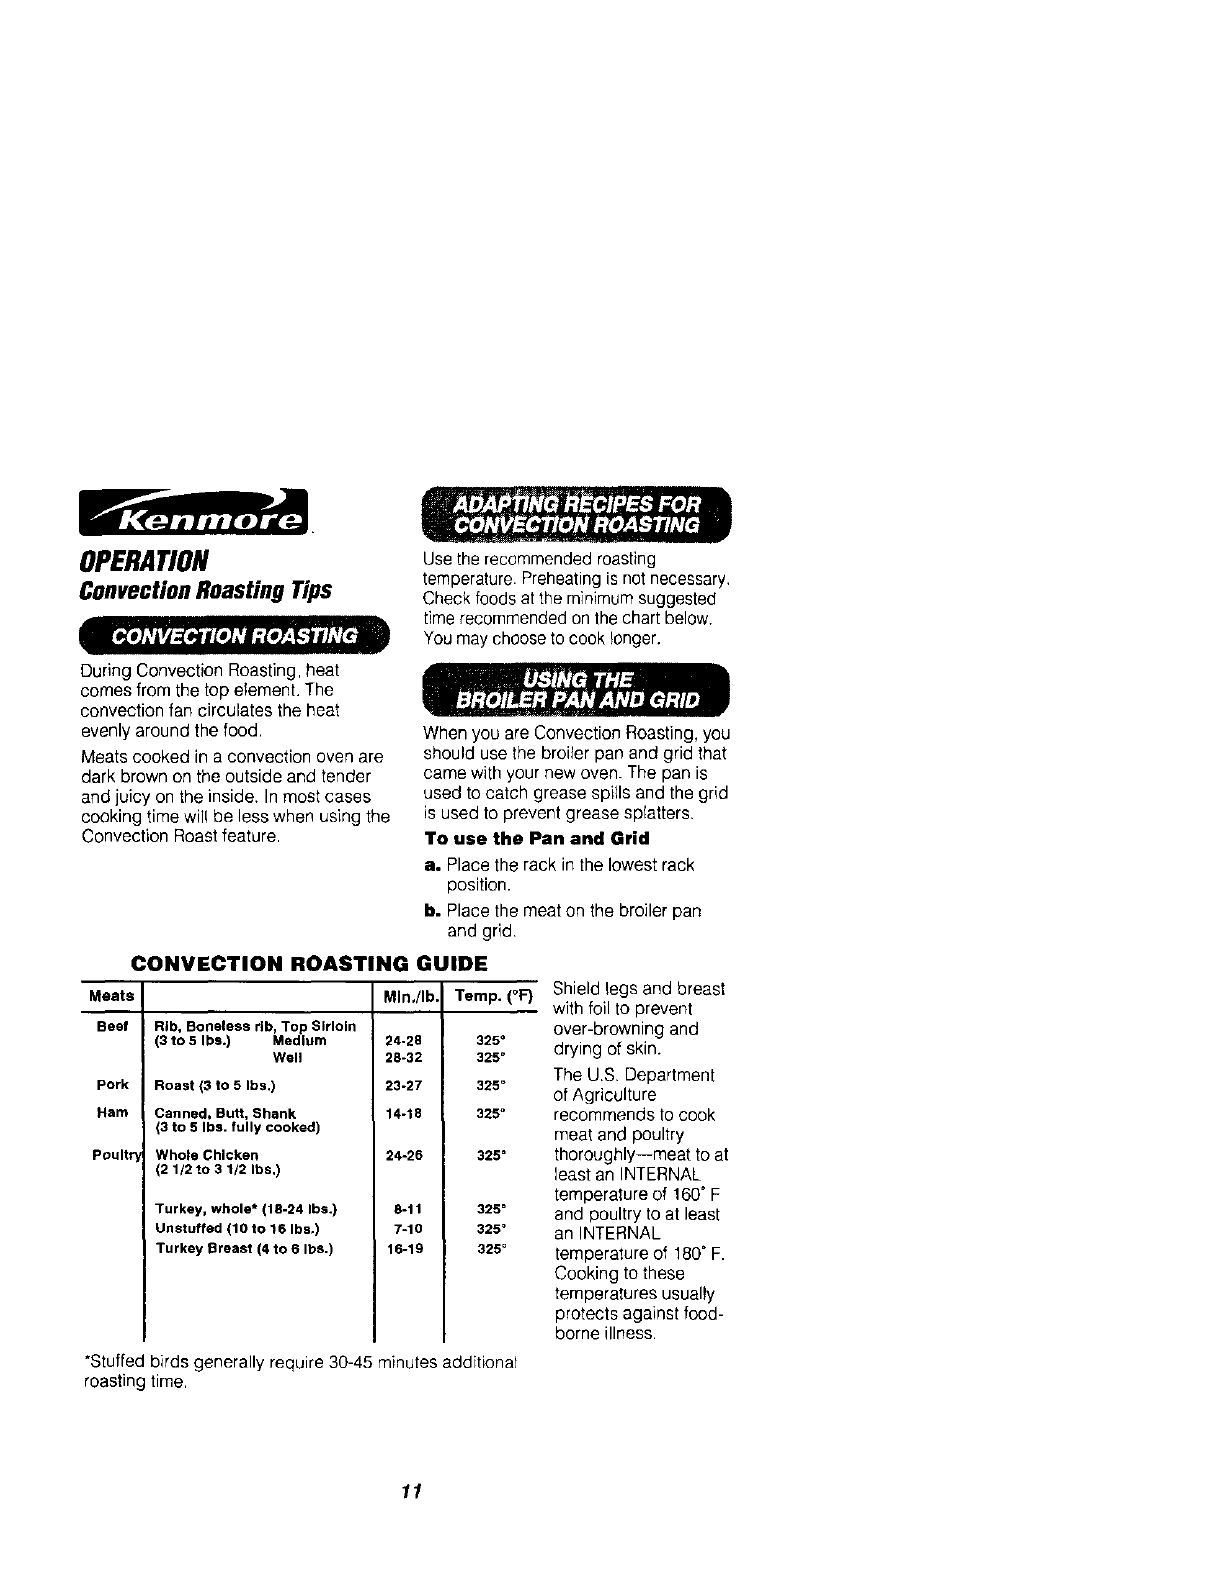 Page 11 of Kenmore Convection Oven 911.41785 User Guide